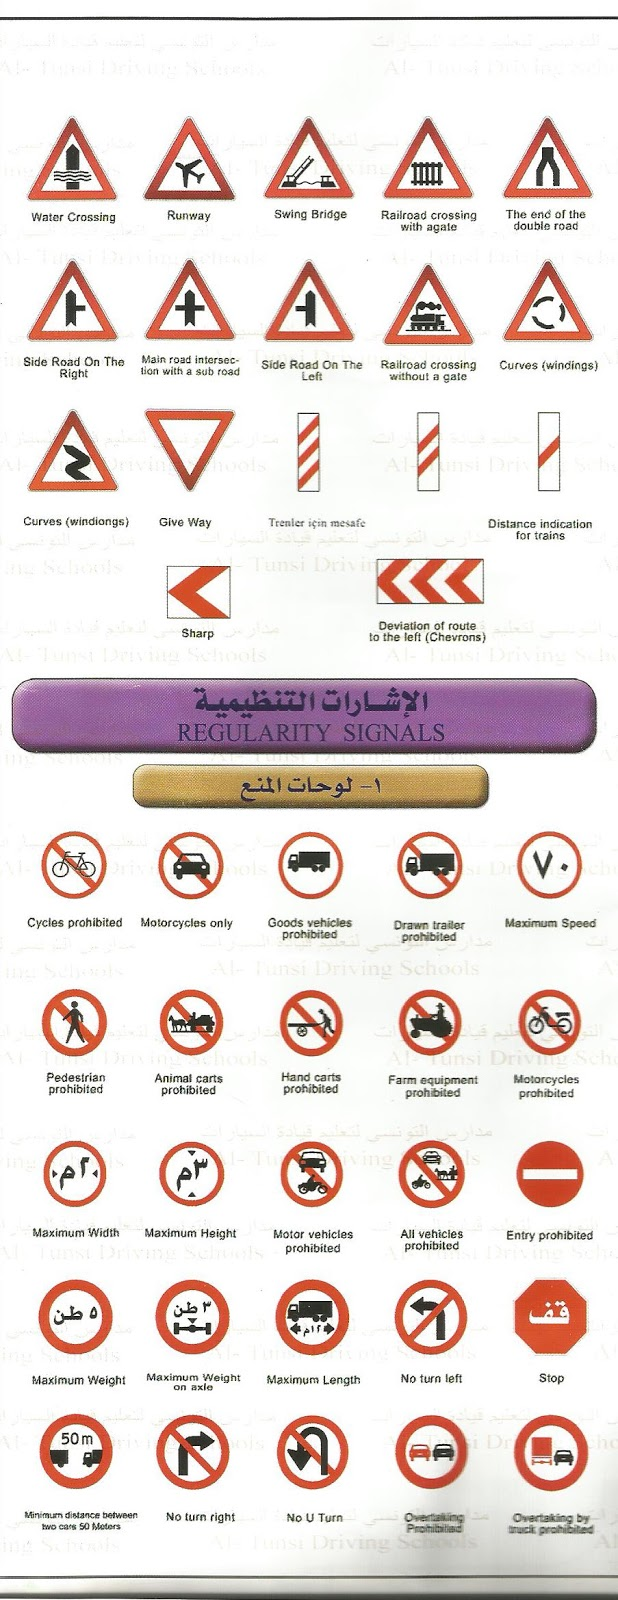 Images used are credit to the driving license office of makkah kingdom saudi arabia